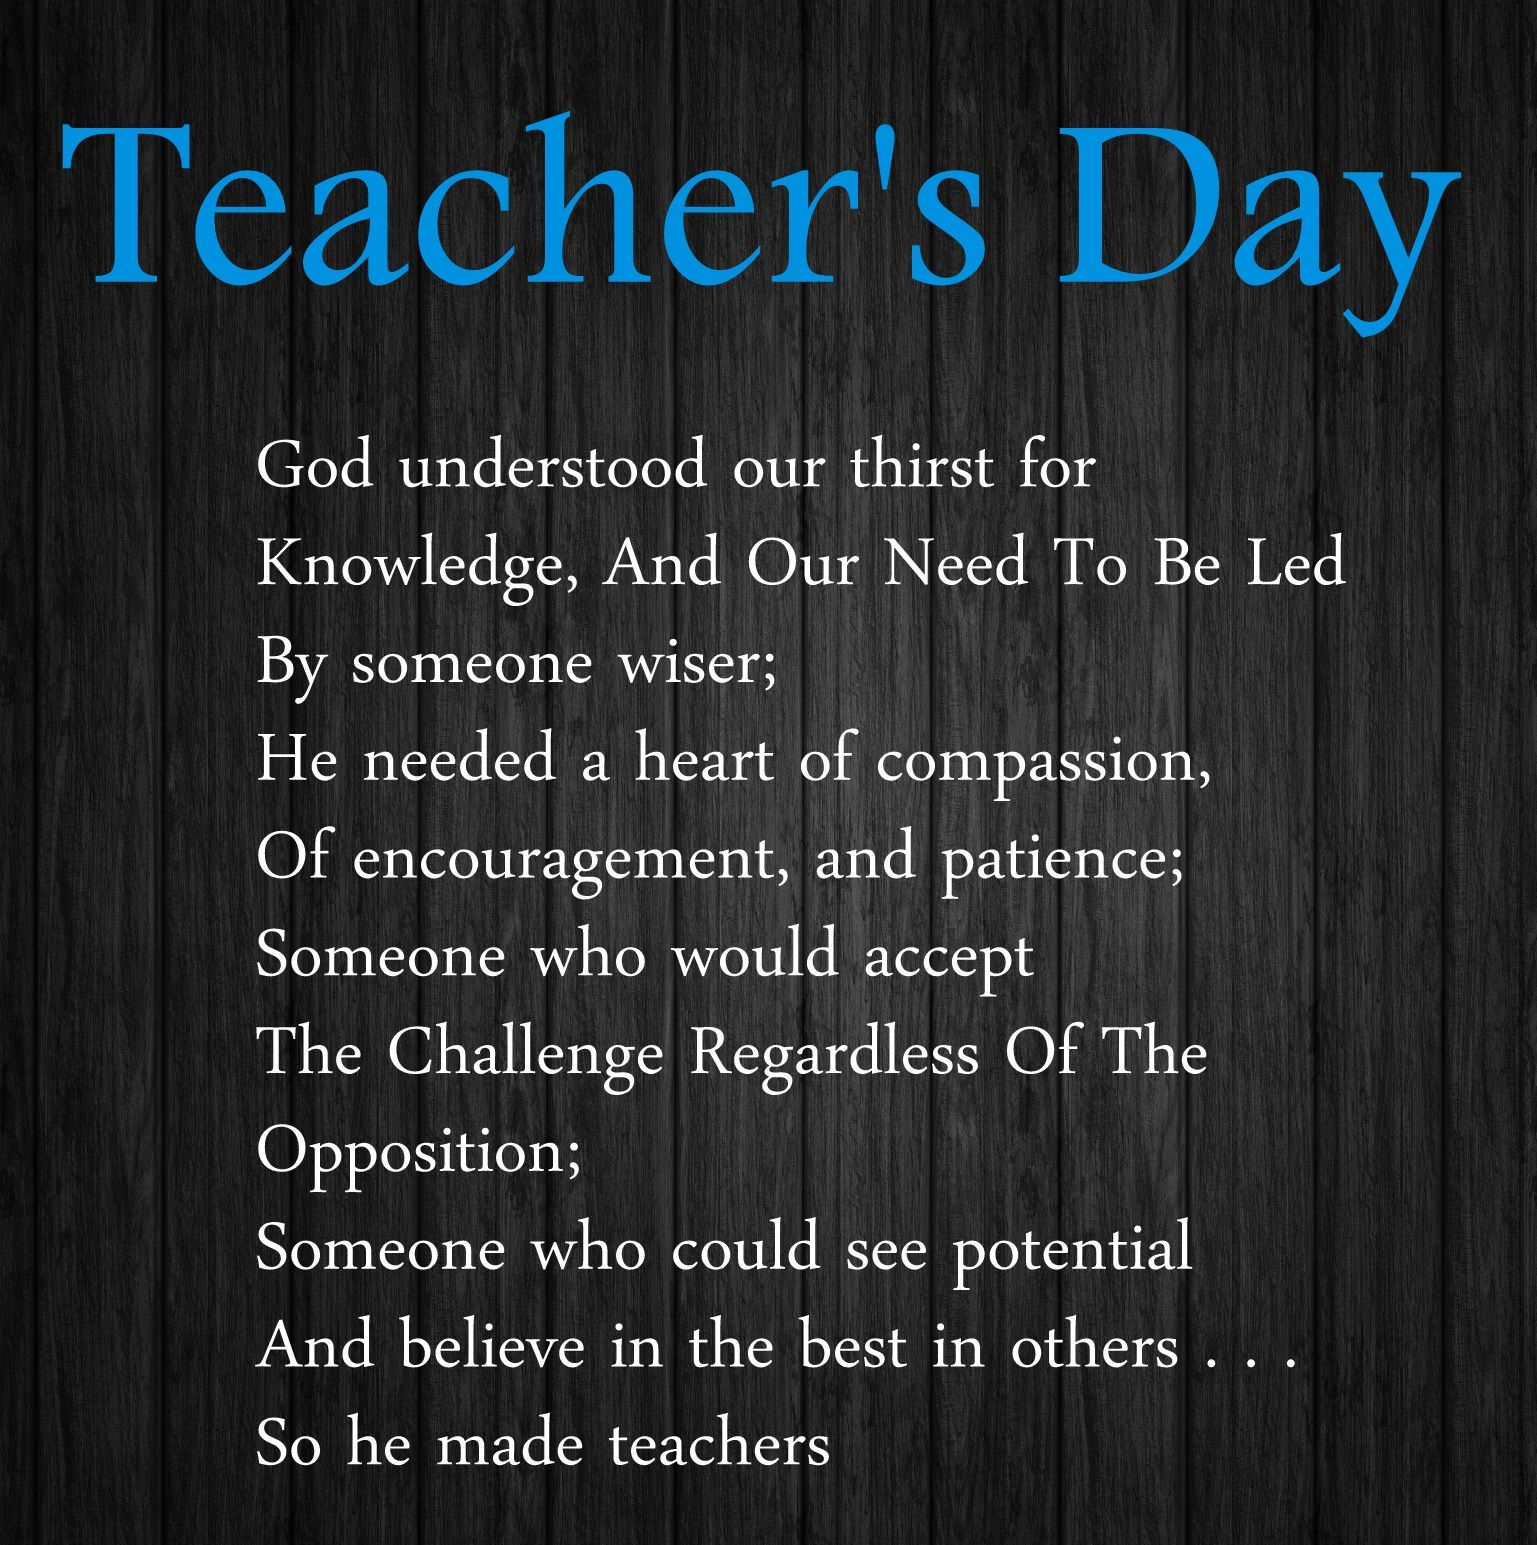 Poems to the day of the teacher for elementary school 7